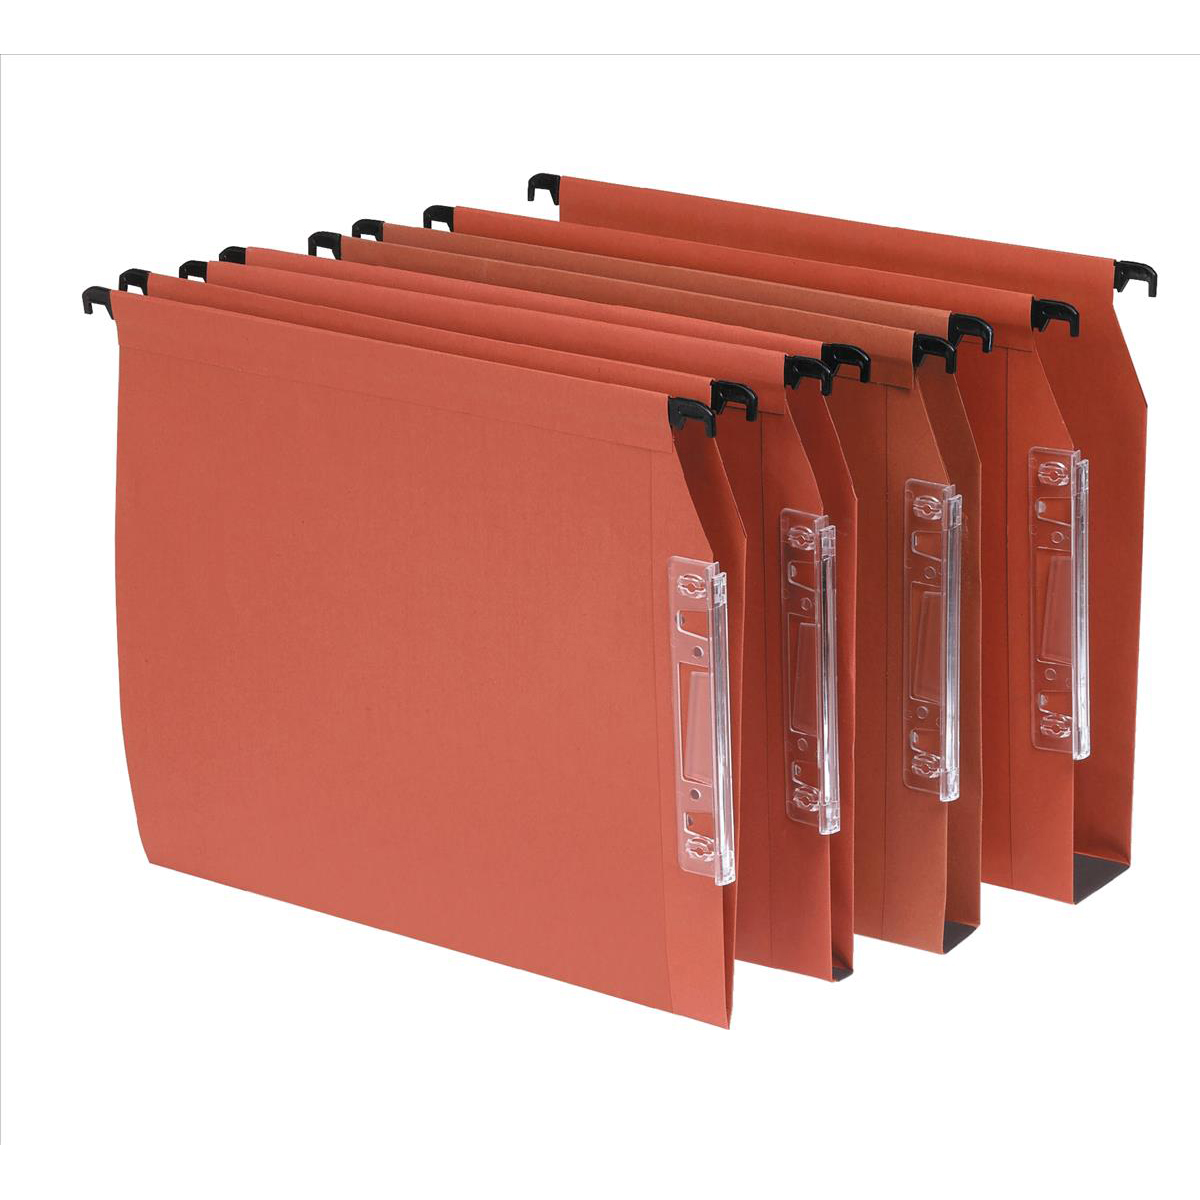 Bantex Linking Lateral File Kraft 50mm Wide-base 210gsm Foolscap Orange Ref 100330745 [Pack 25]